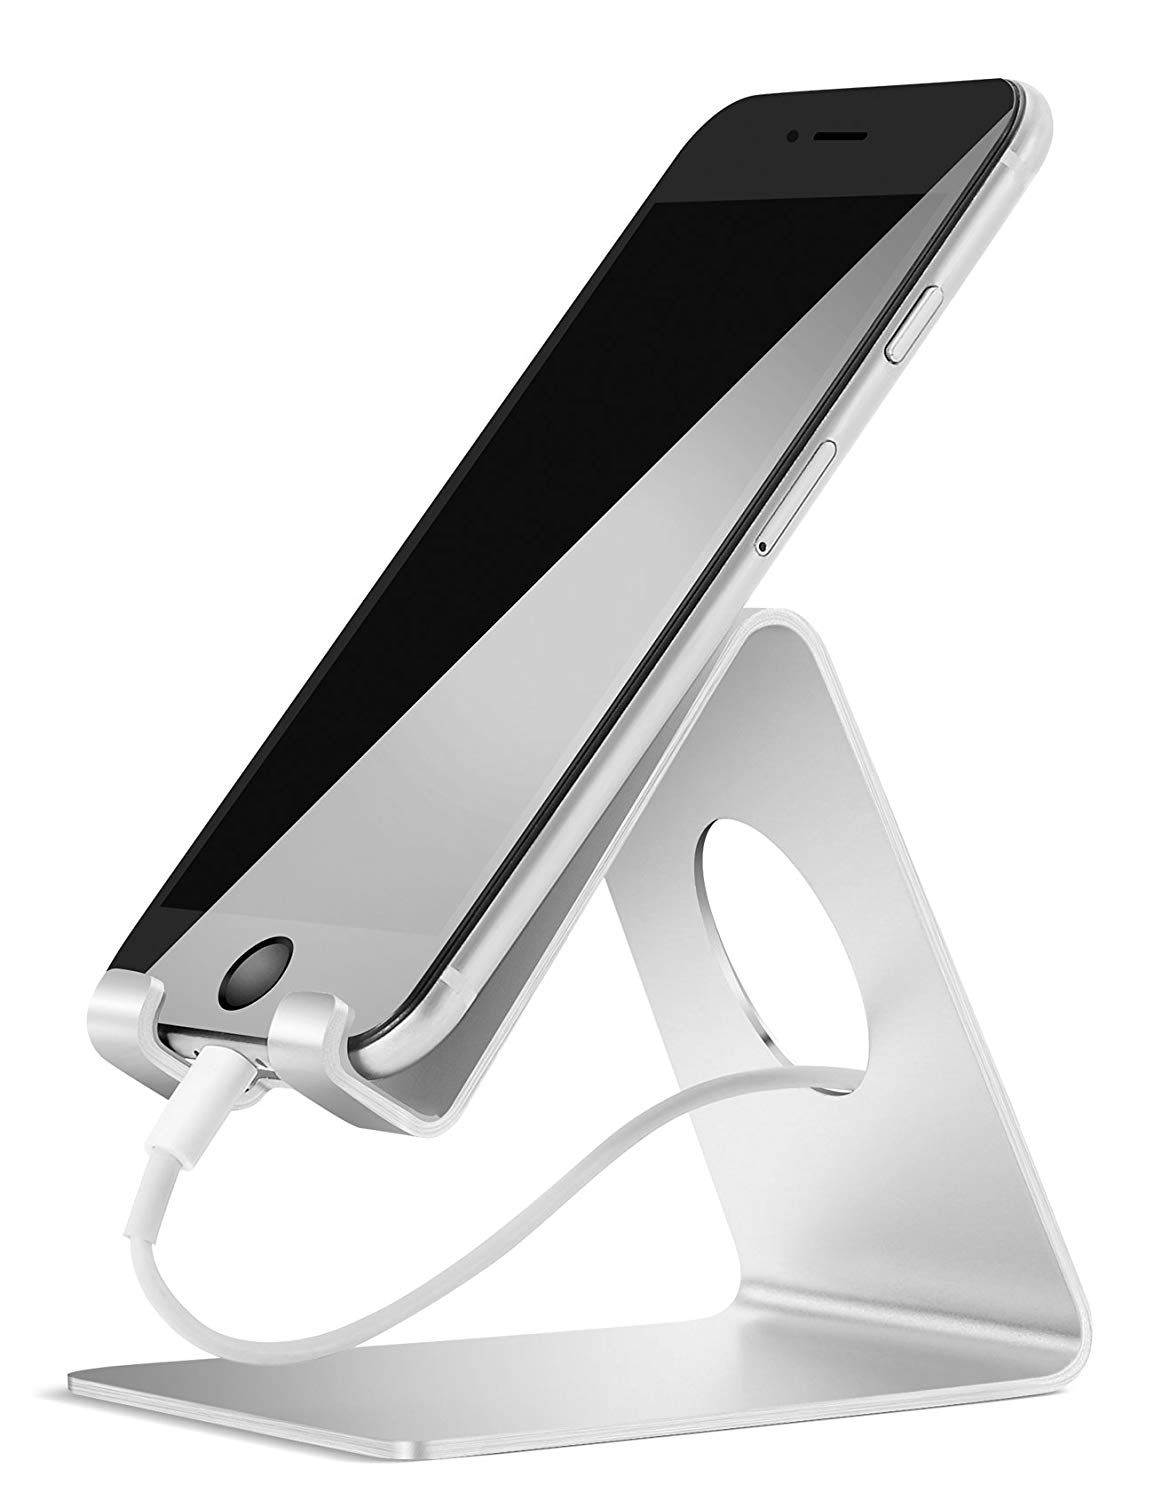 Phone Stand, Lamicall Phone Dock : Universal Stand, Cradle, Holder for  £6.39